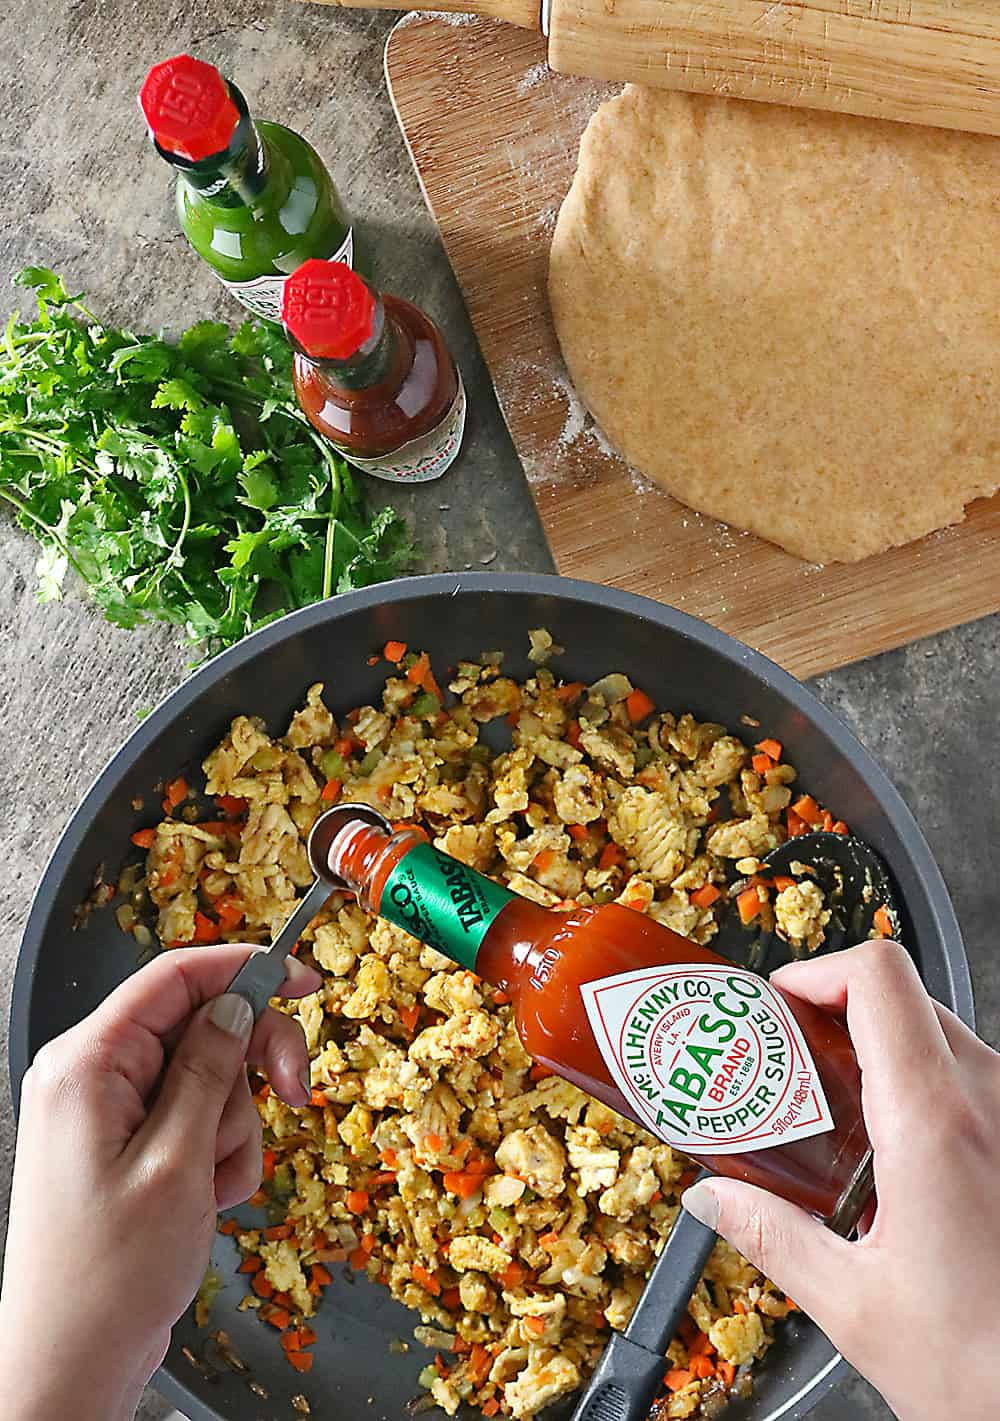 Photo of Tabasco in Curried Chicken